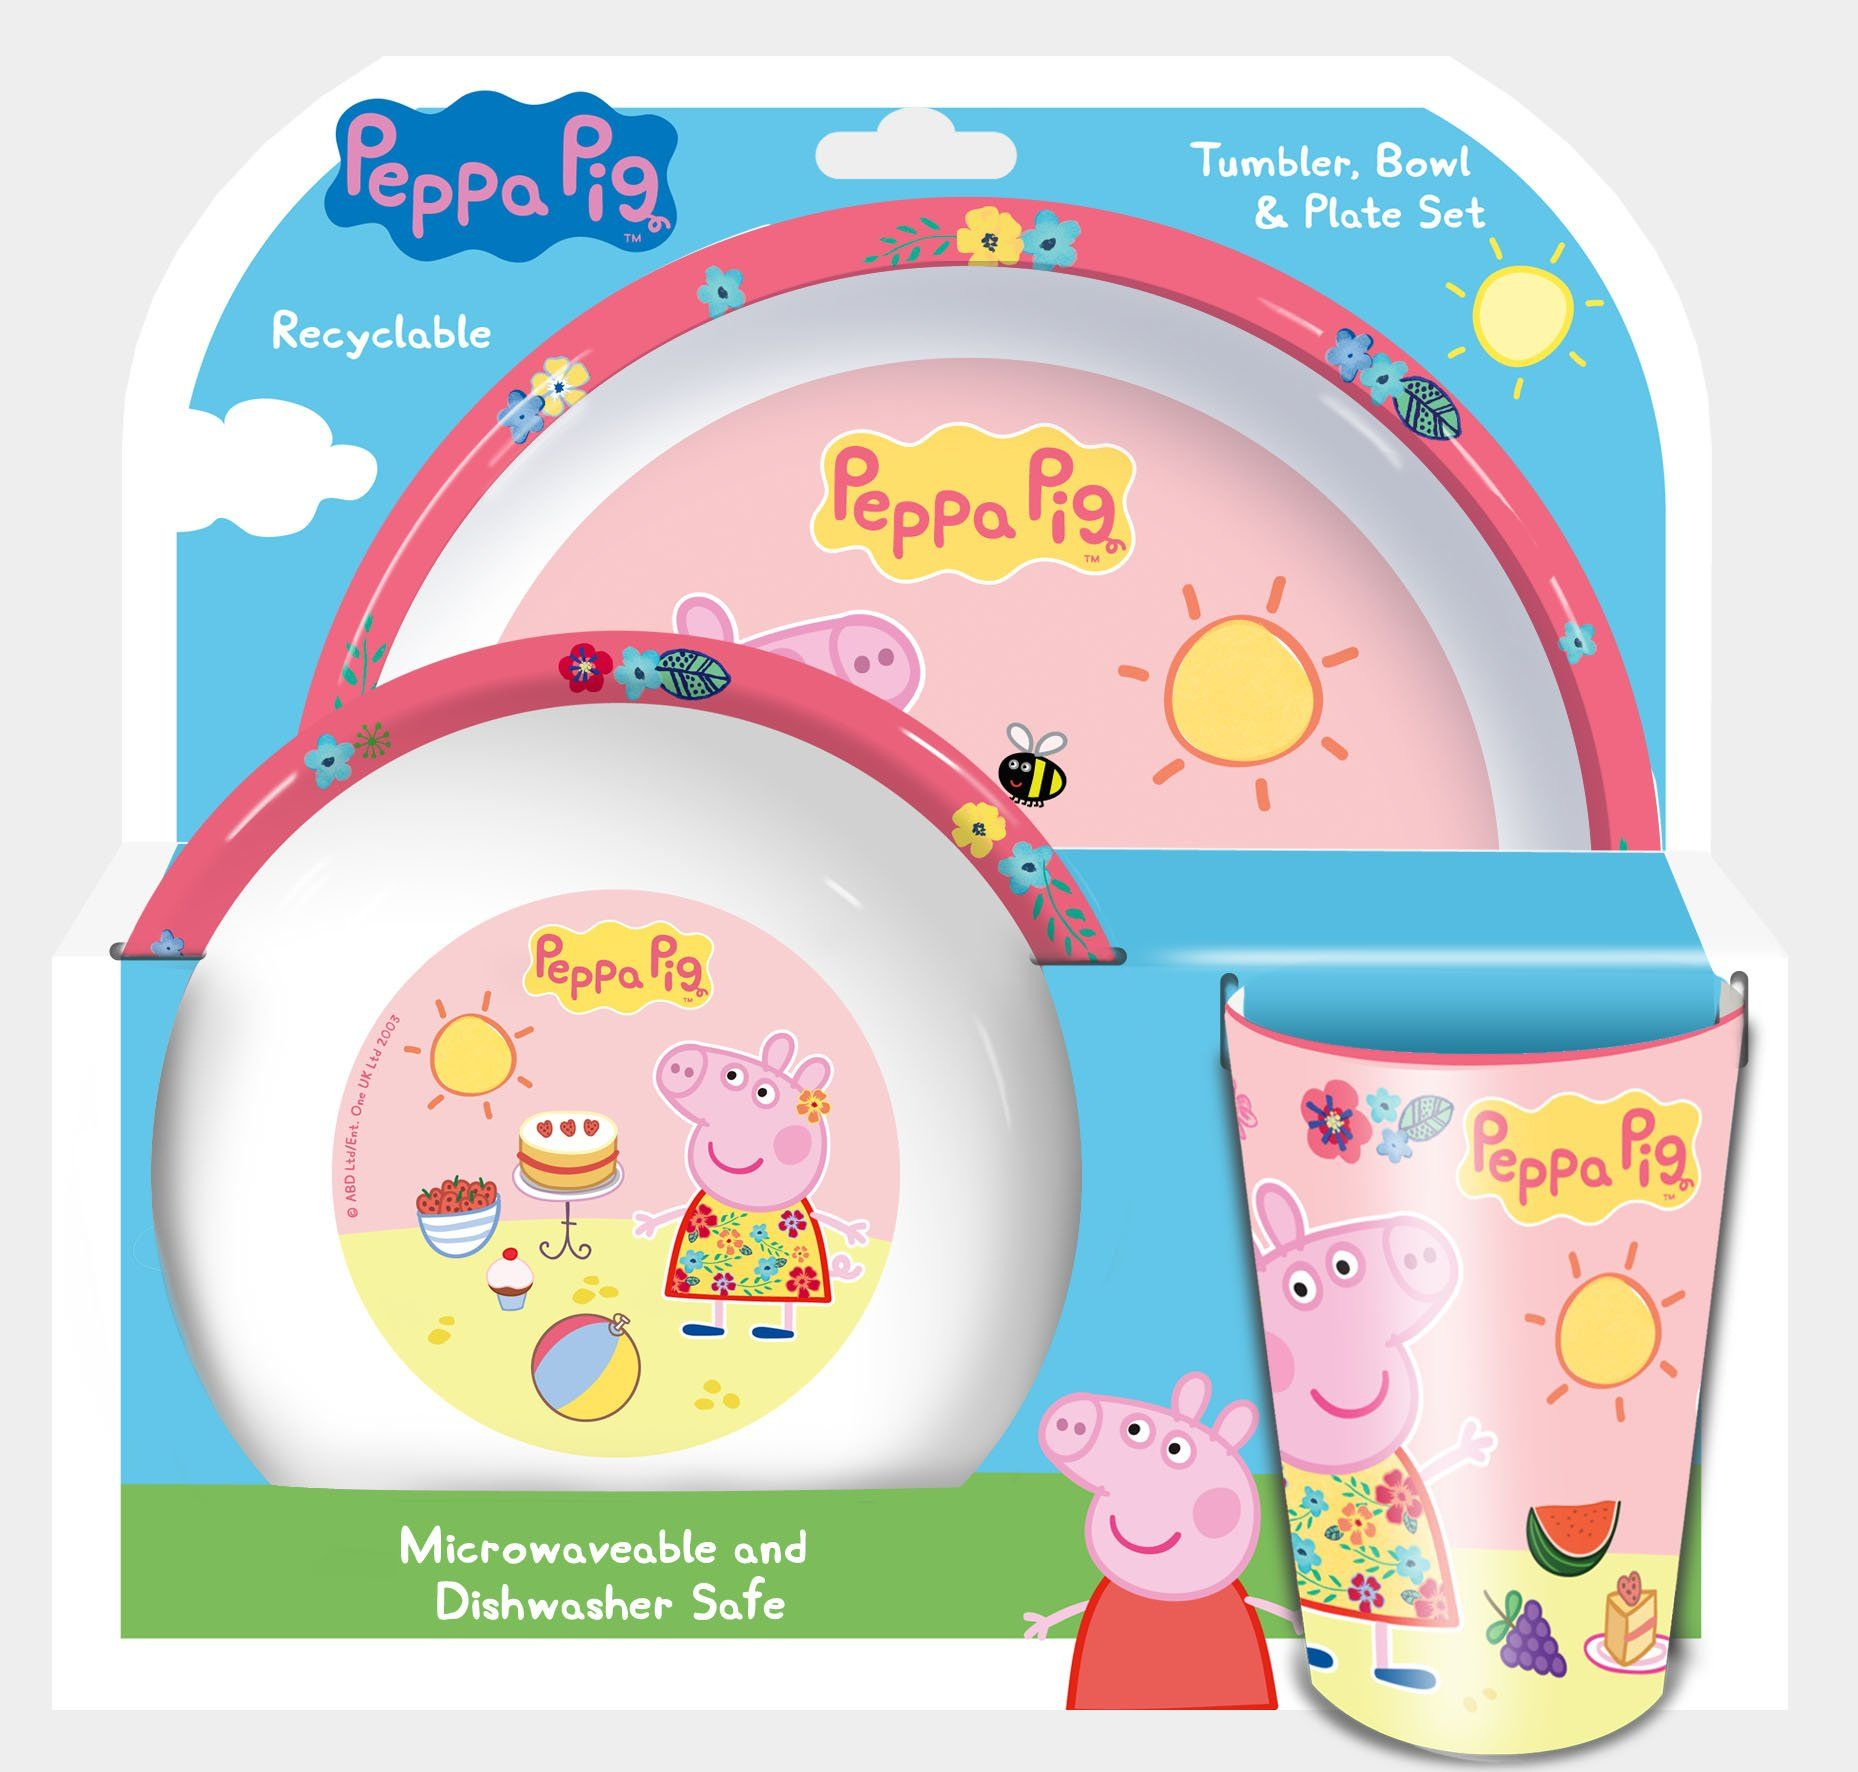 Peppa Pig Tropical Tumbler Bowl And Plate Set Of 3  sc 1 st  Pinterest & Peppa Pig Tropical Tumbler Bowl And Plate Set Of 3 | Toy ...